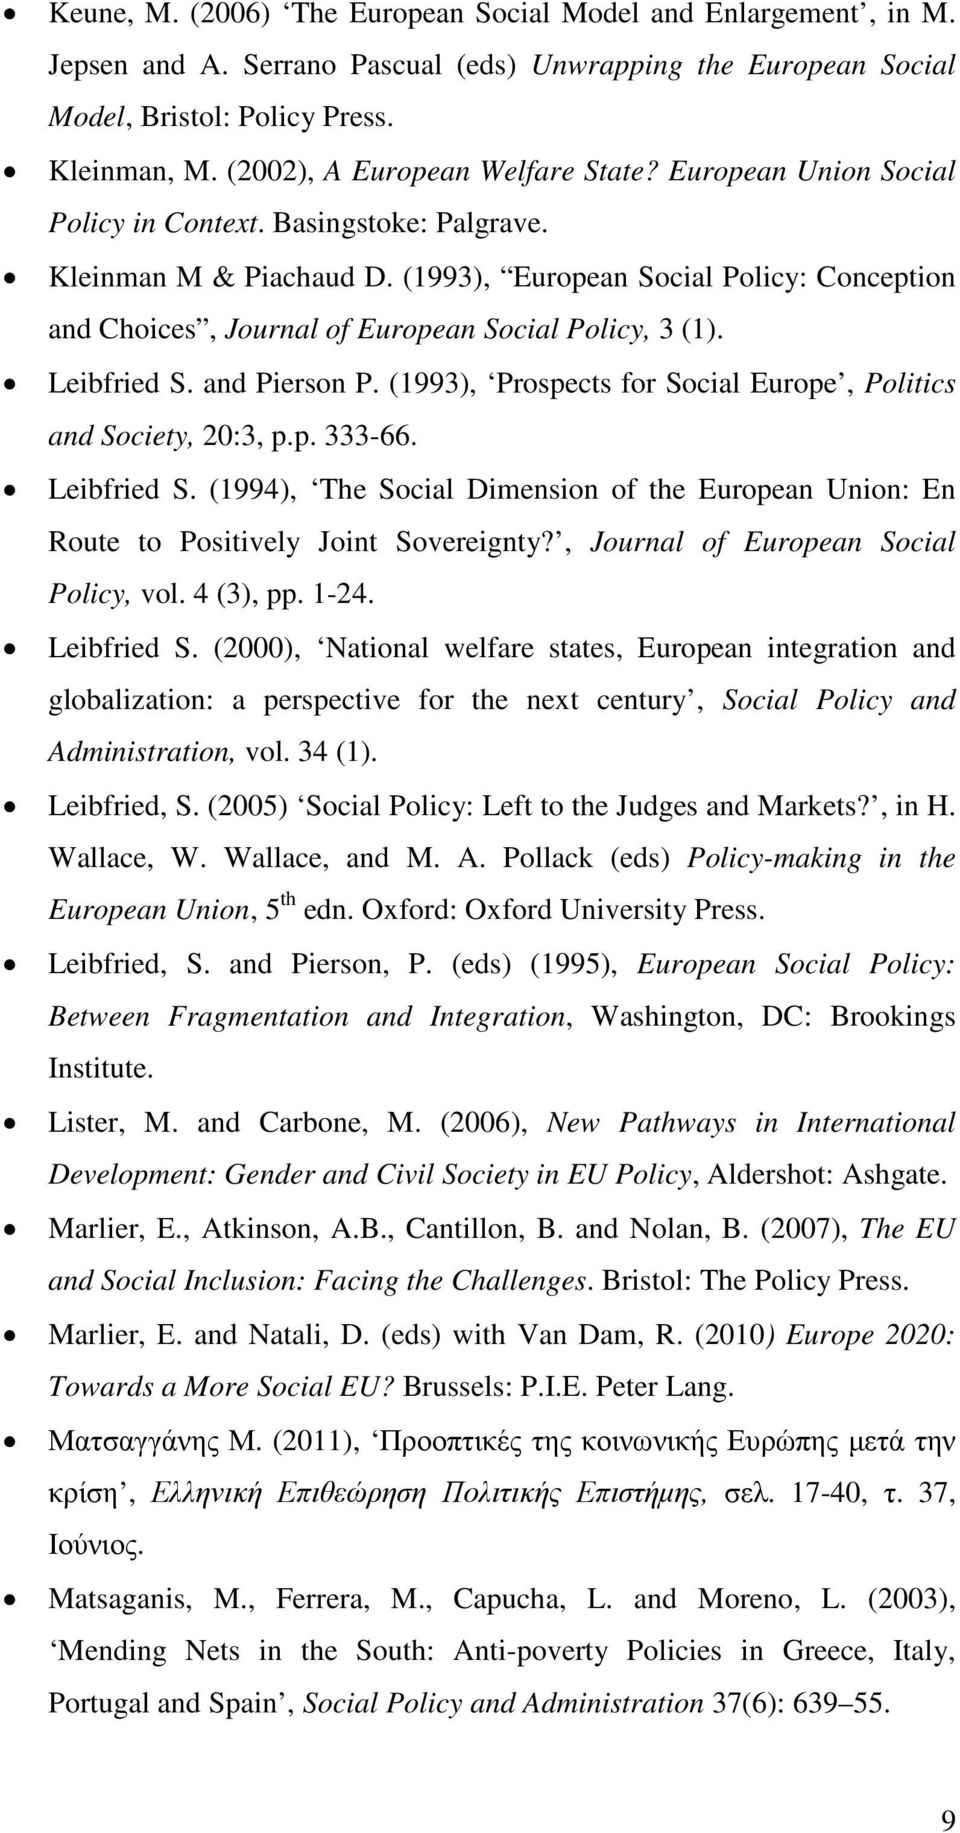 (1993), European Social Policy: Conception and Choices, Journal of European Social Policy, 3 (1). Leibfried S. and Pierson P. (1993), Prospects for Social Europe, Politics and Society, 20:3, p.p. 333-66.